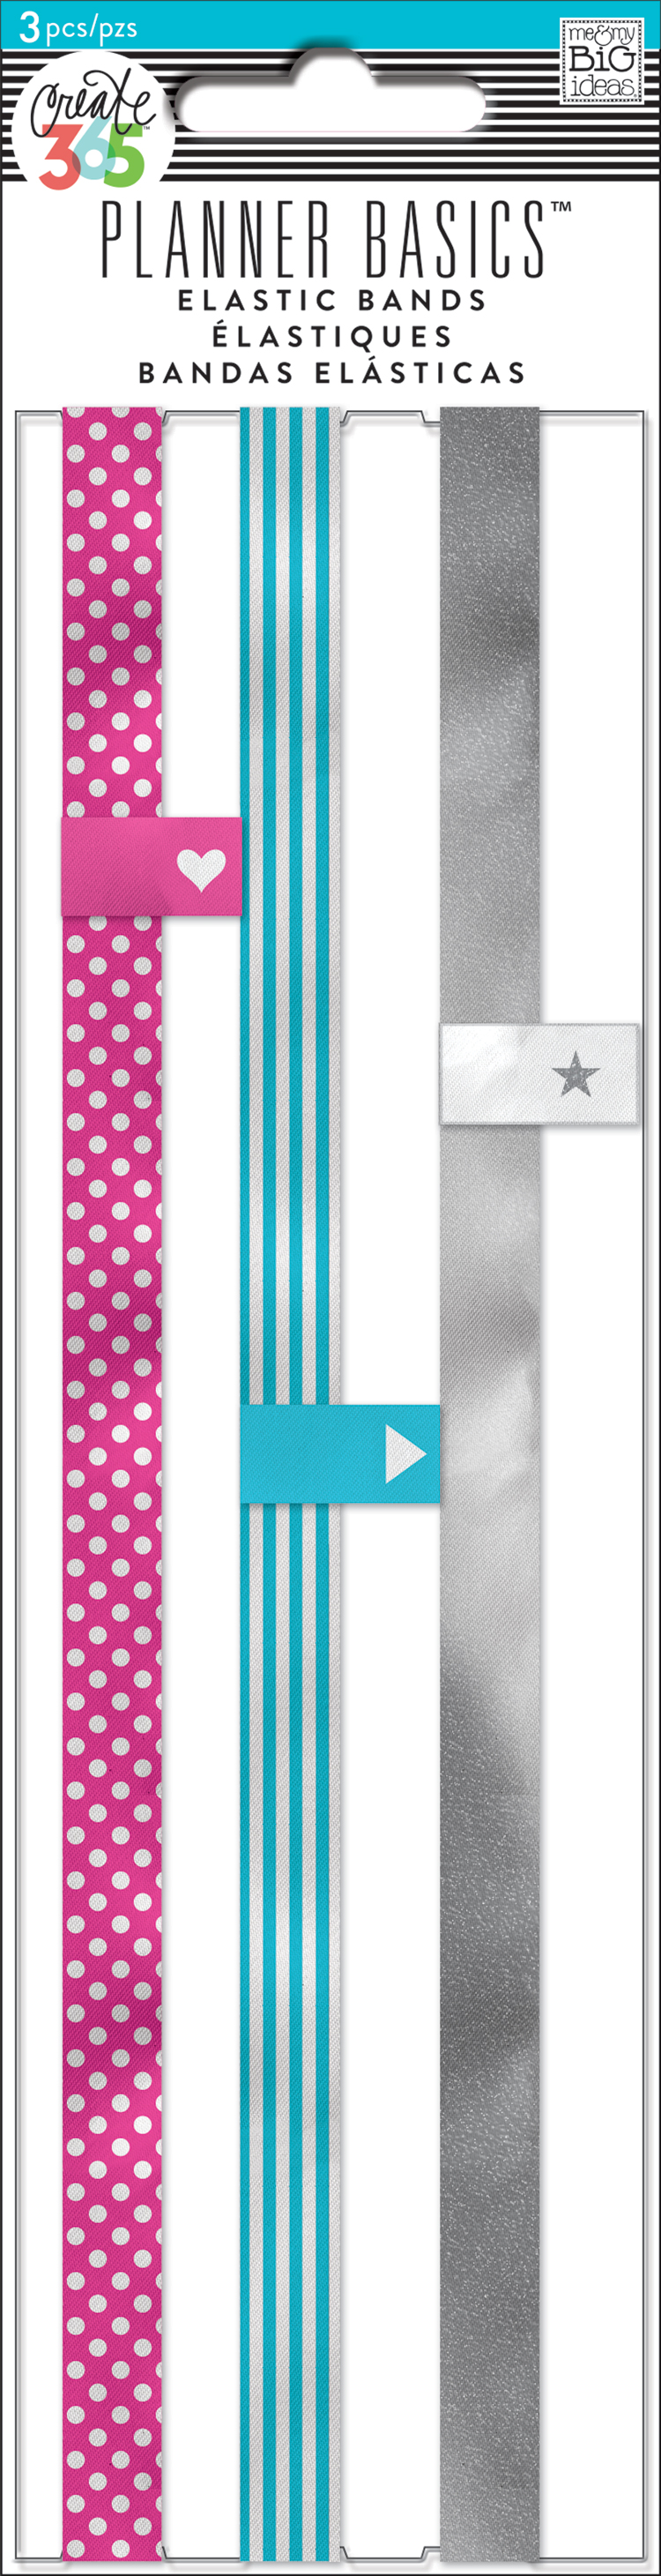 'Neon' Planner Basics™ elastic bands for The Happy Planner™ | me & my BIG ideas.jpg